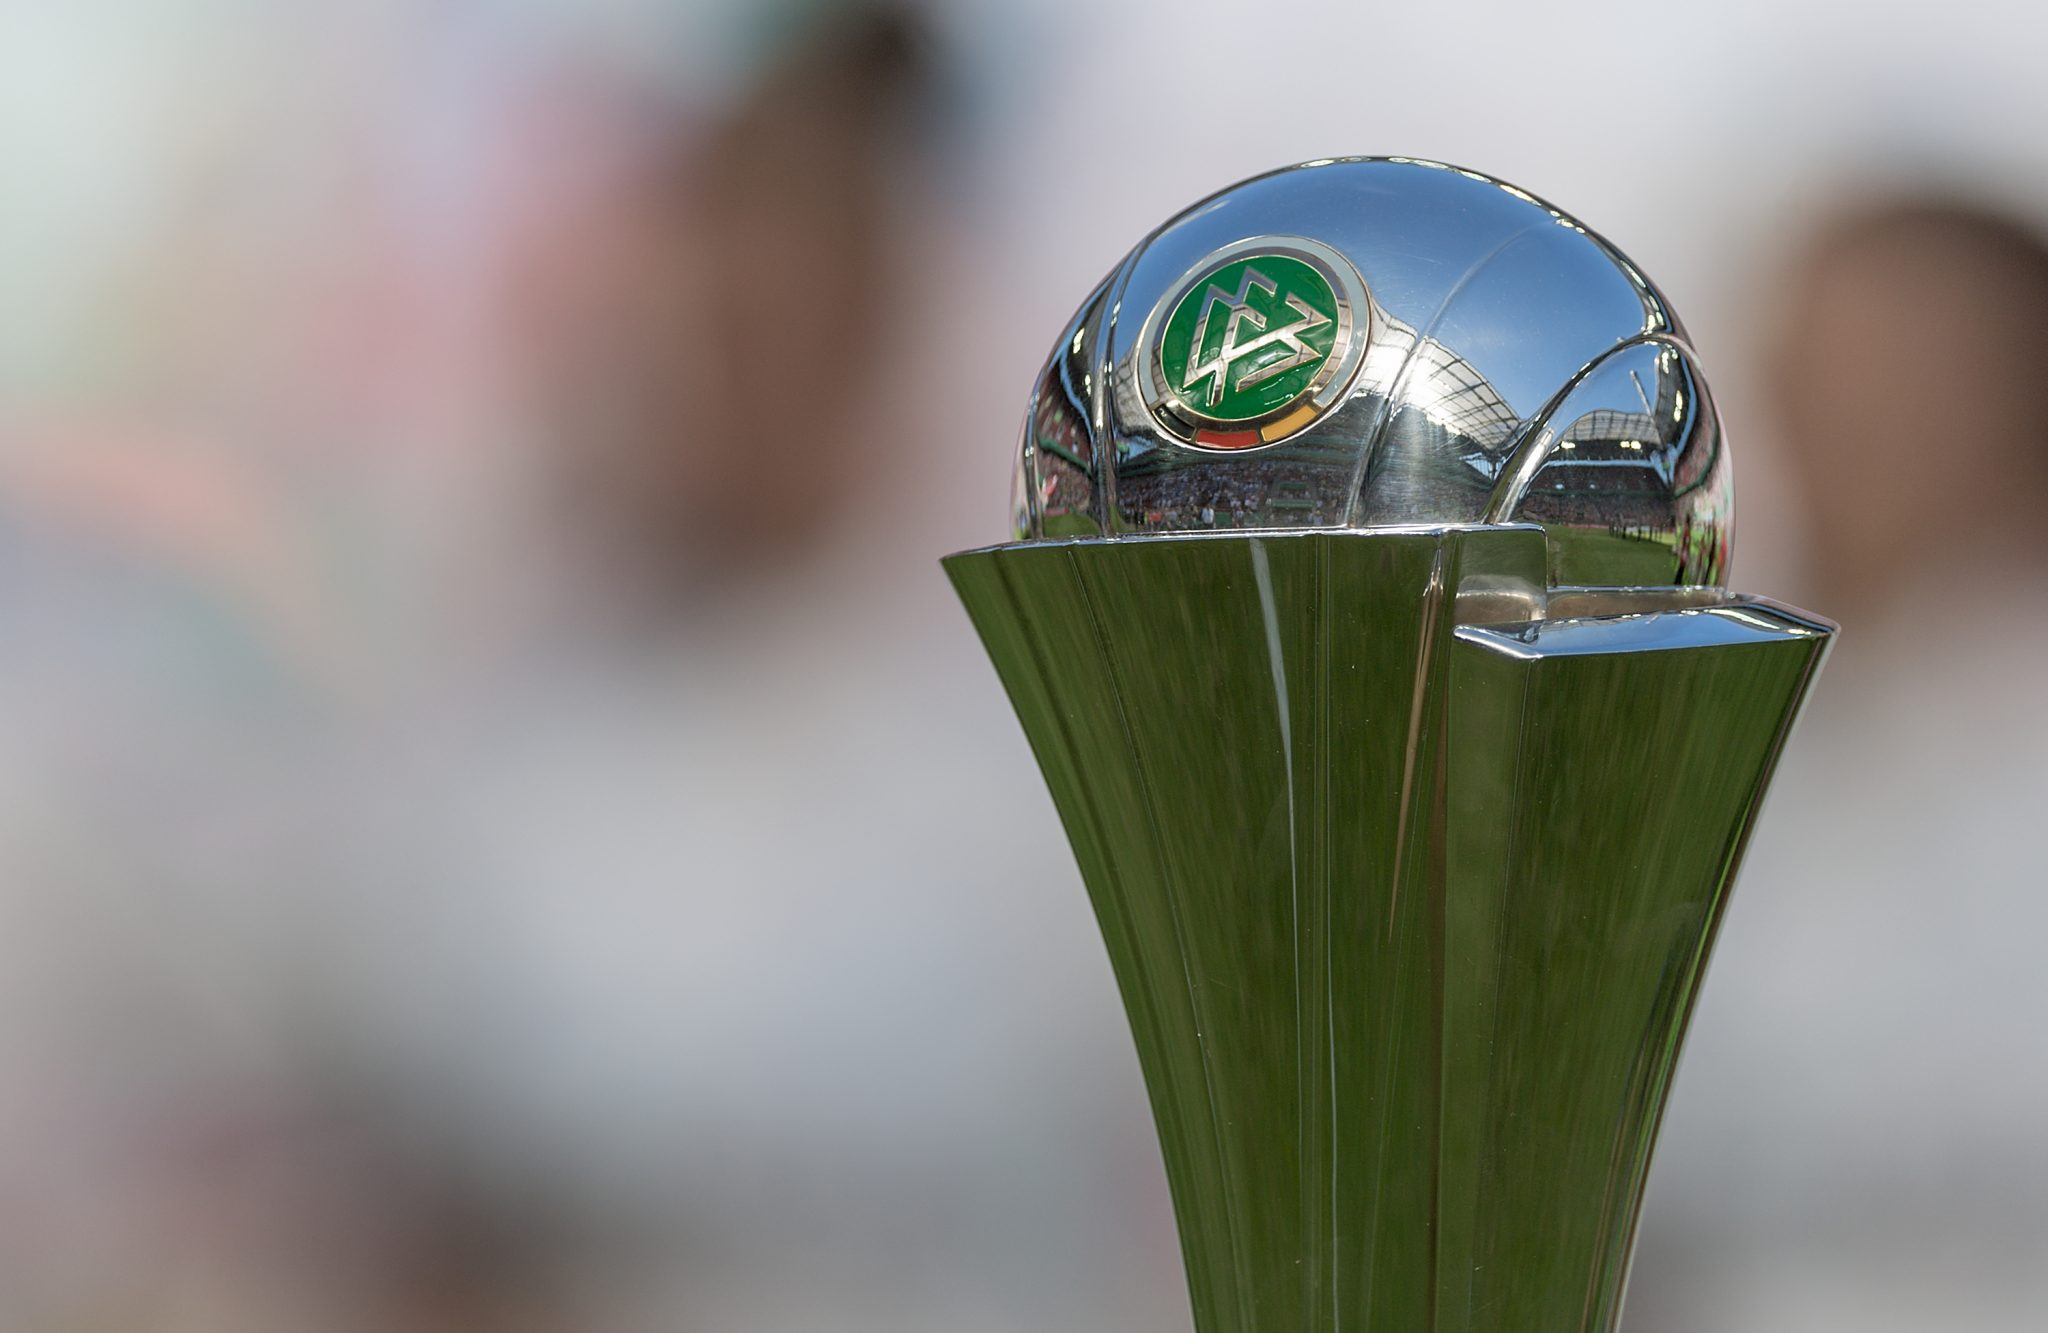 dfb-pokal|dfb-cup